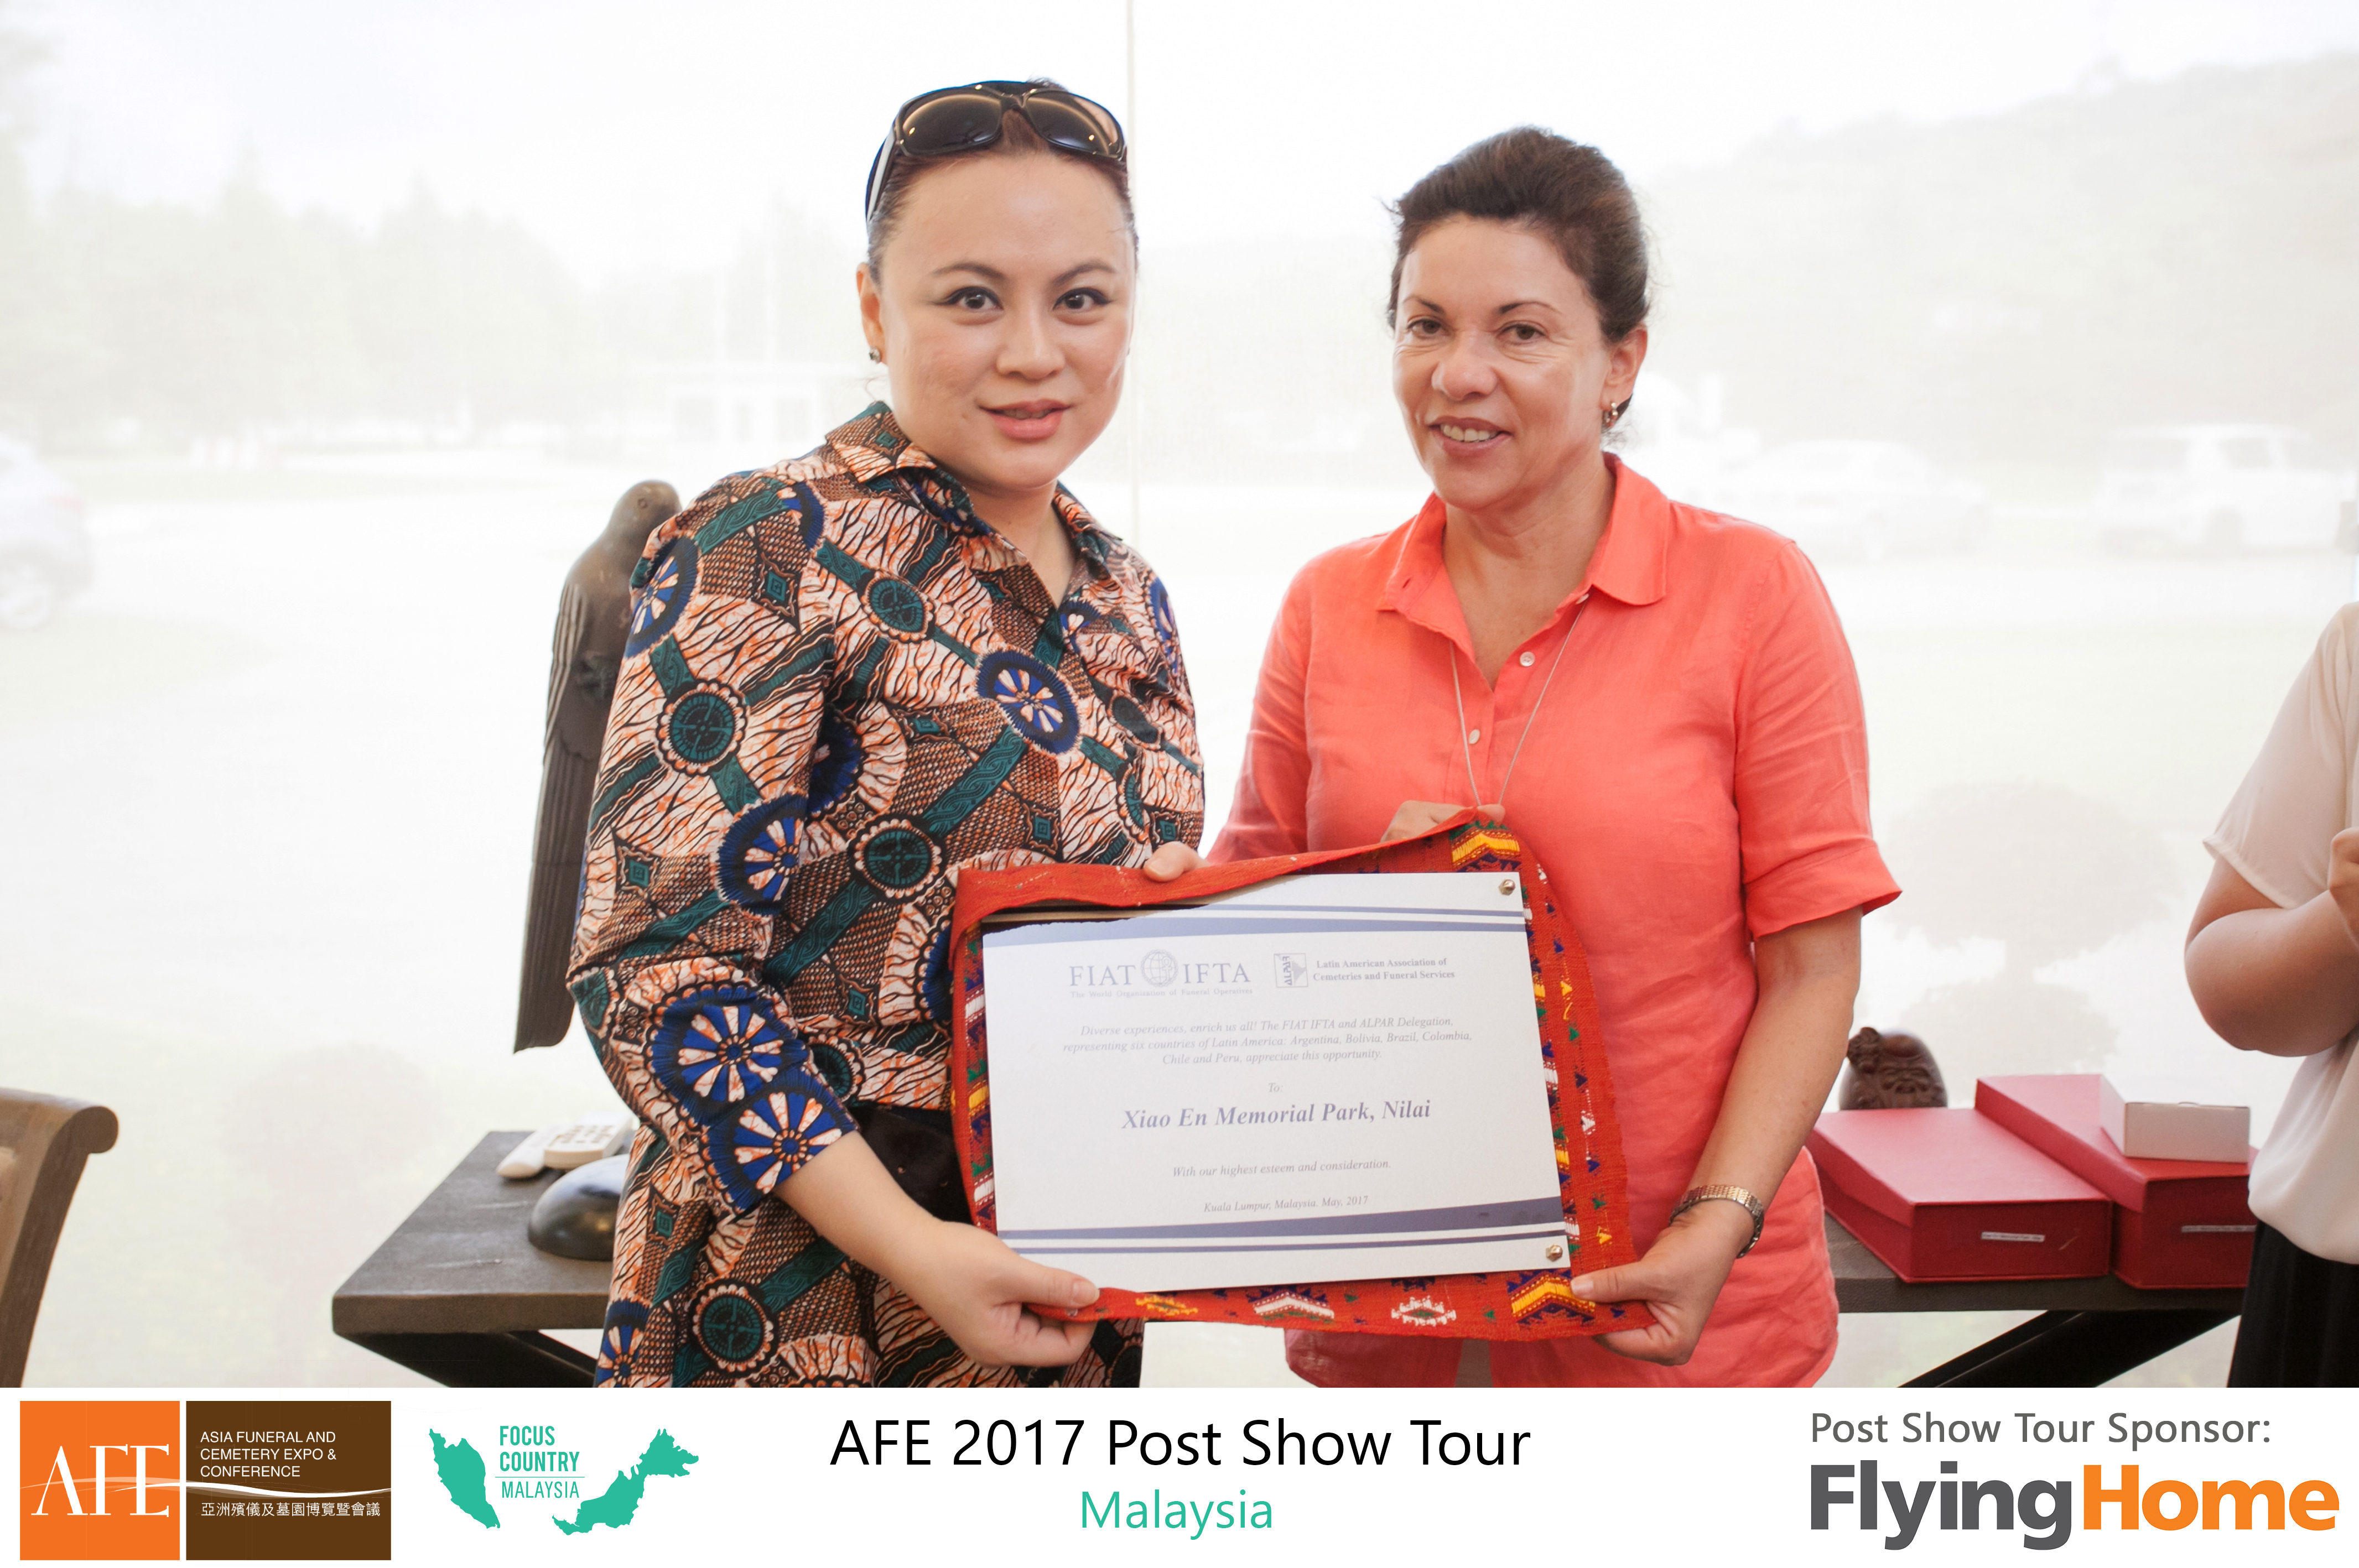 AFE Post Show Tour 2017 Day 3 -20